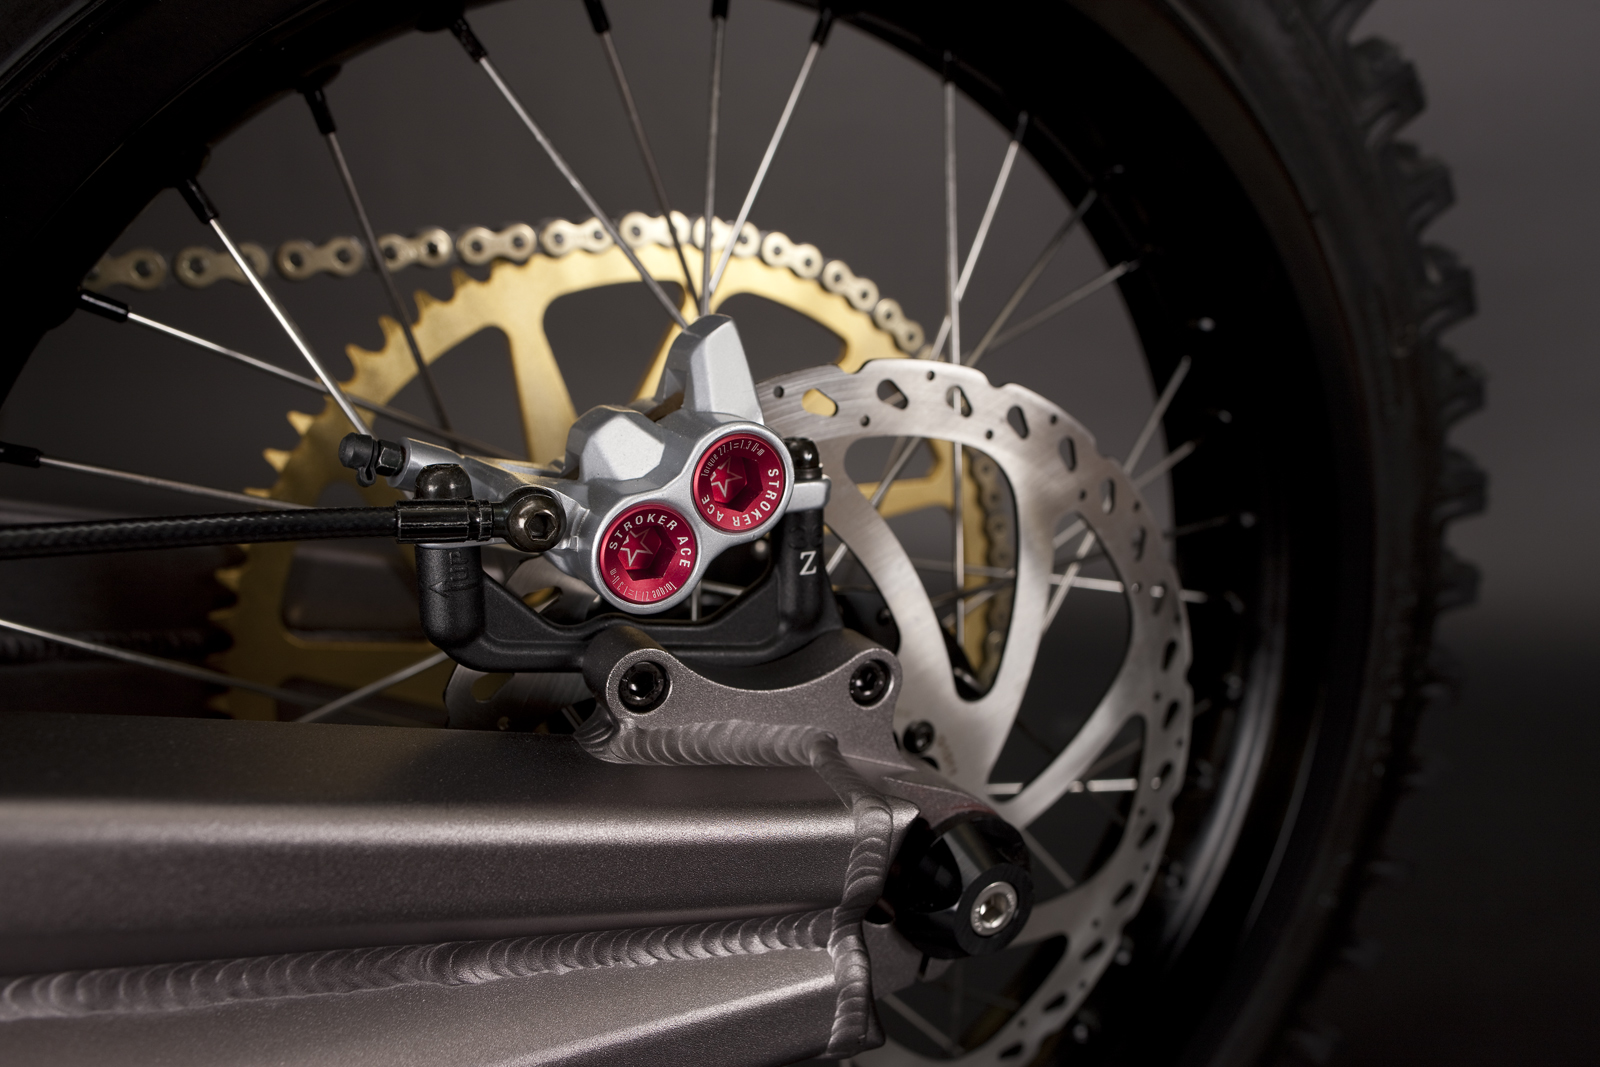 2010 Zero X Electric Motorcycle: Rear Brake